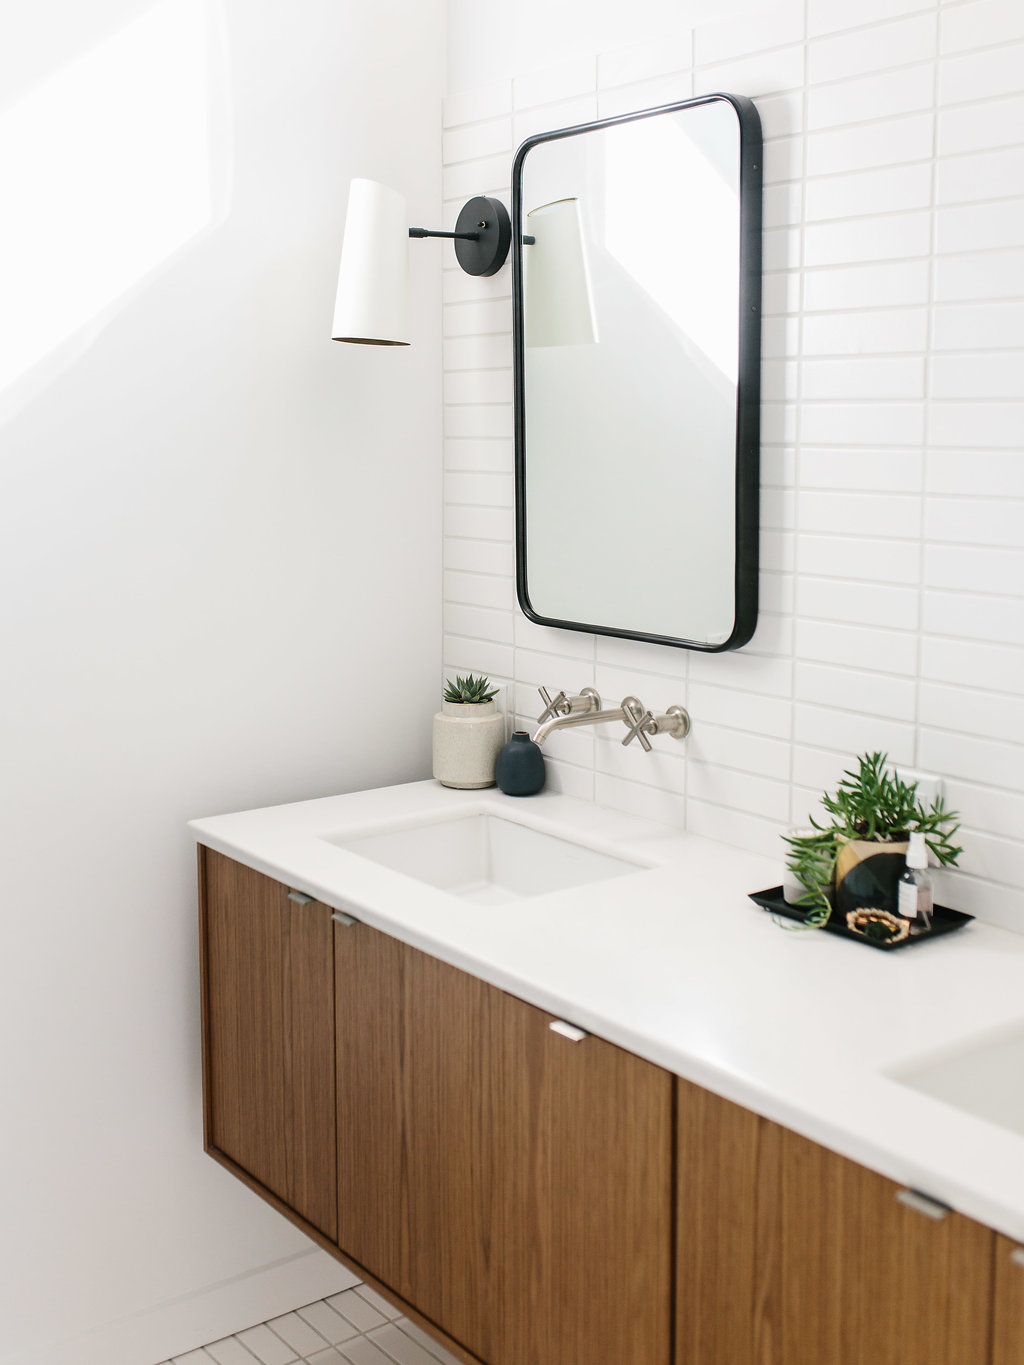 Our Austin Casa Mid Century Modern Master Bathroom